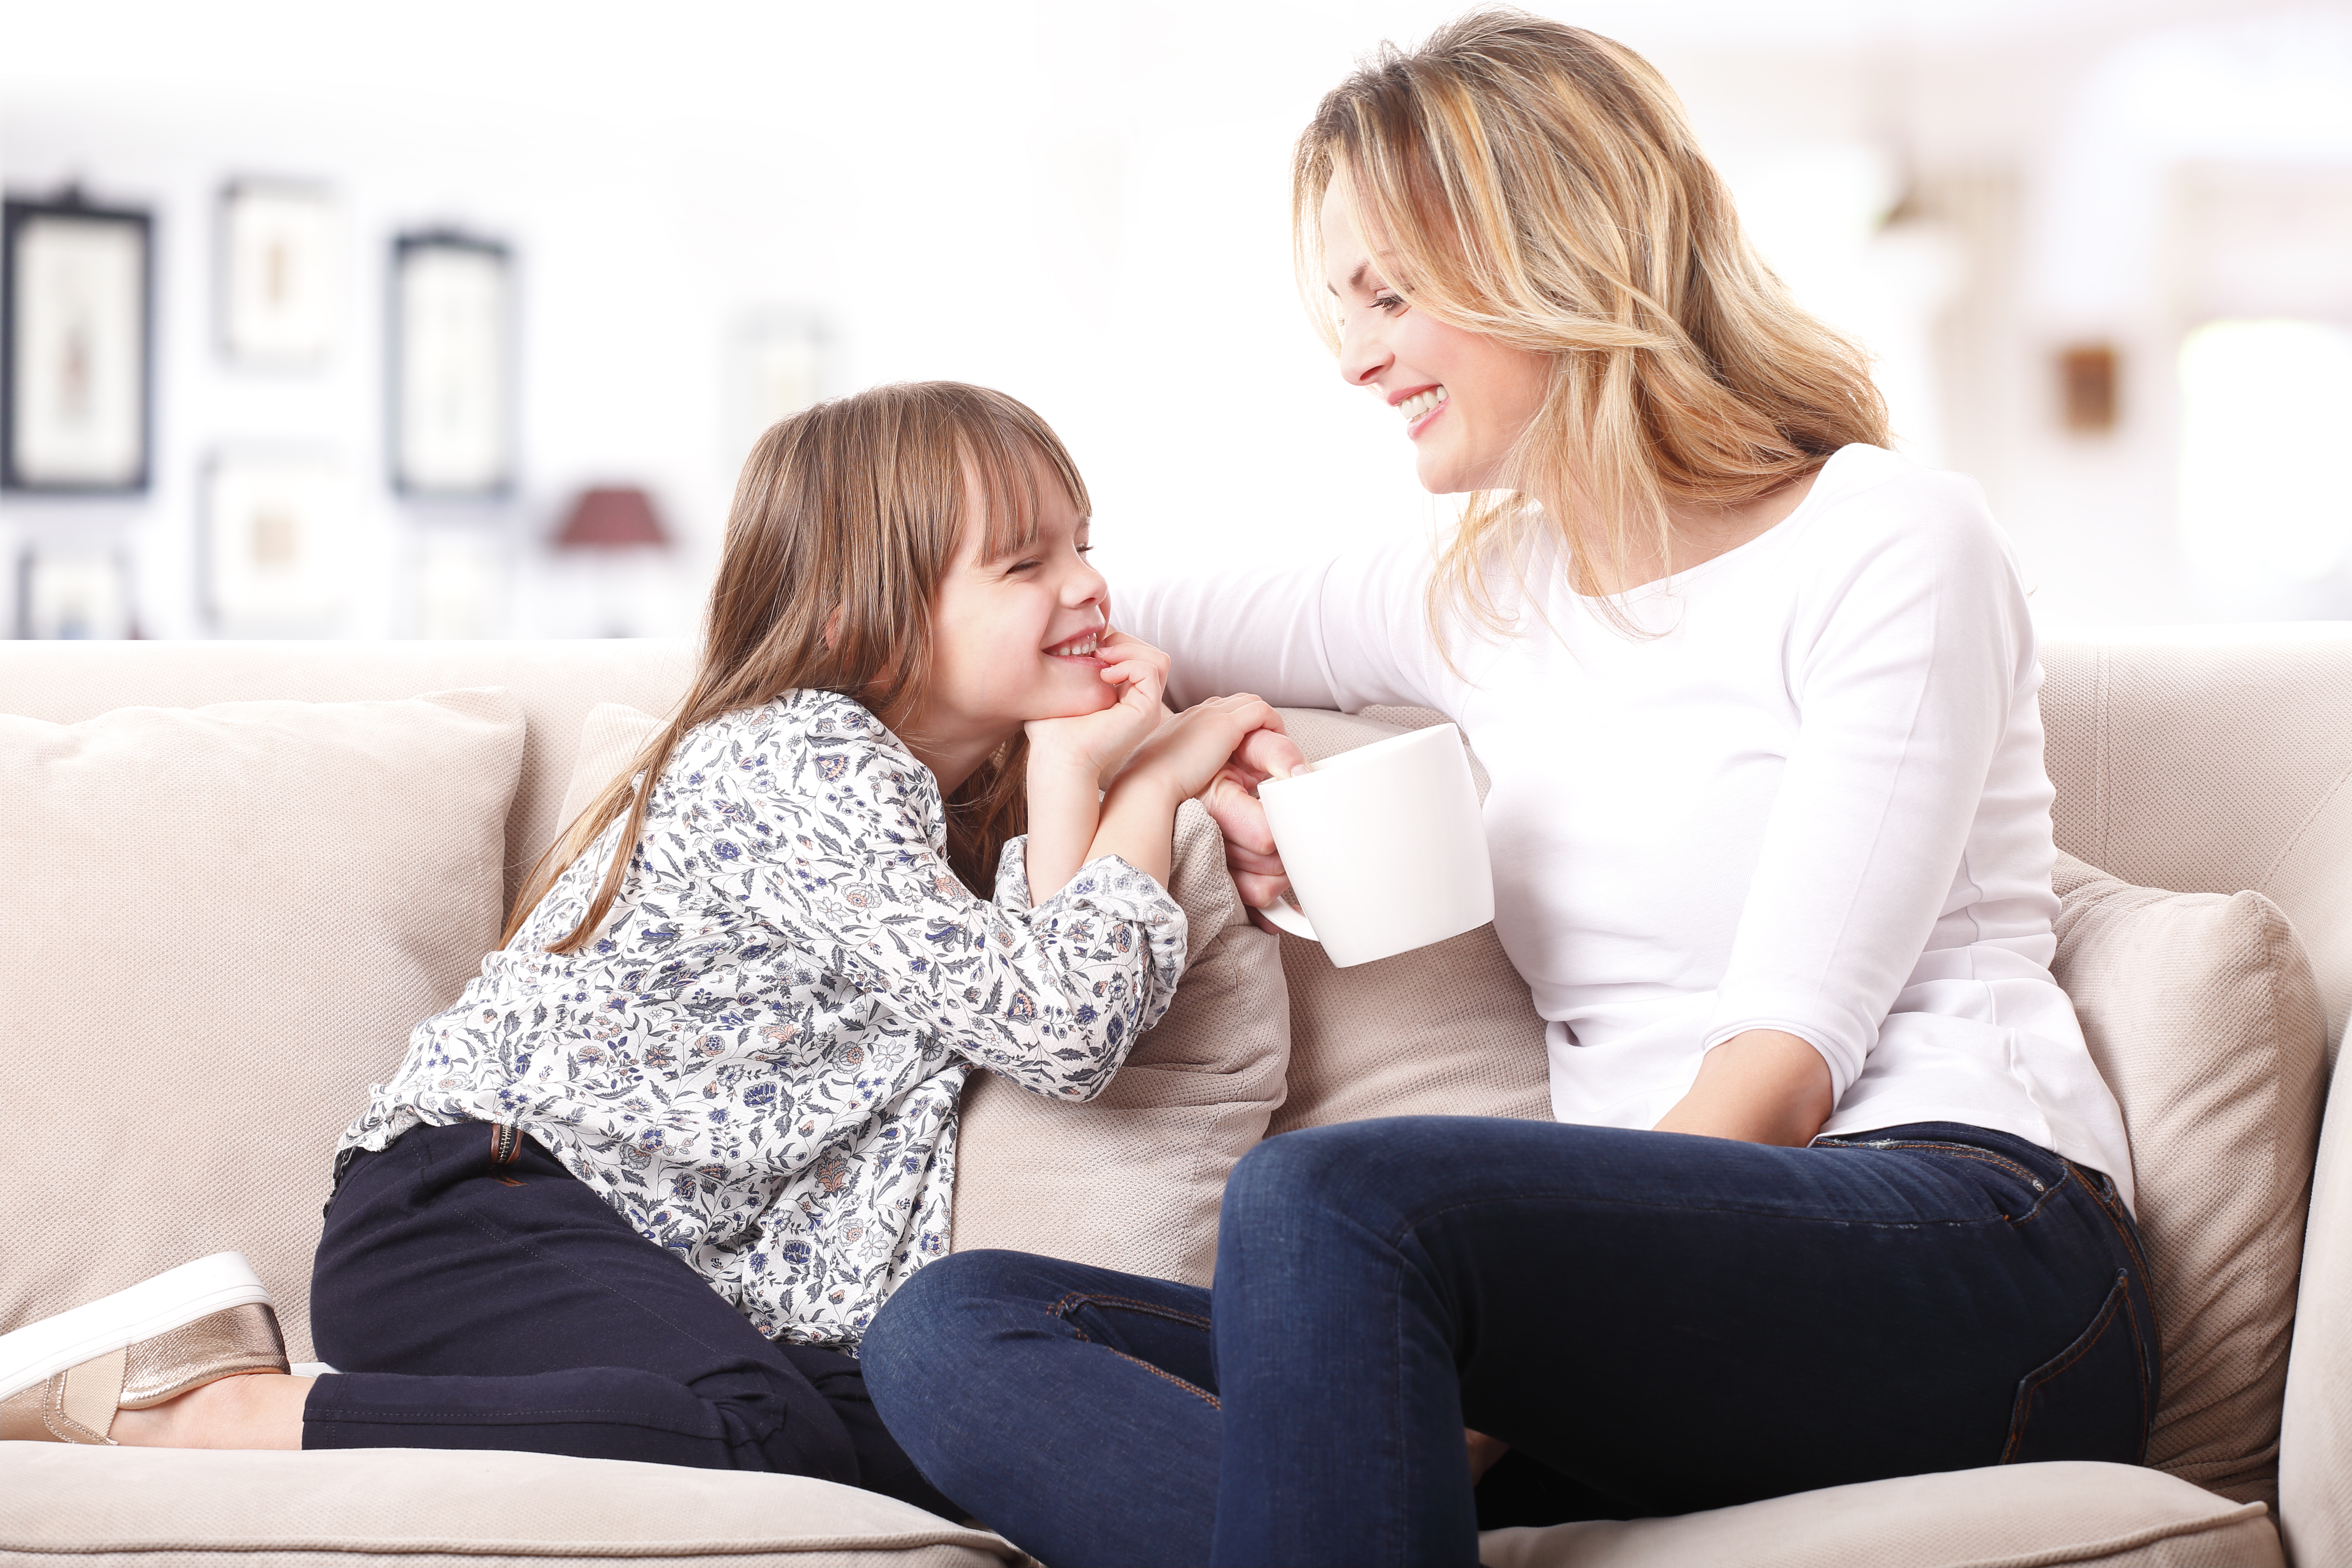 Taking care of yourself can be the best thing for your child's well-being